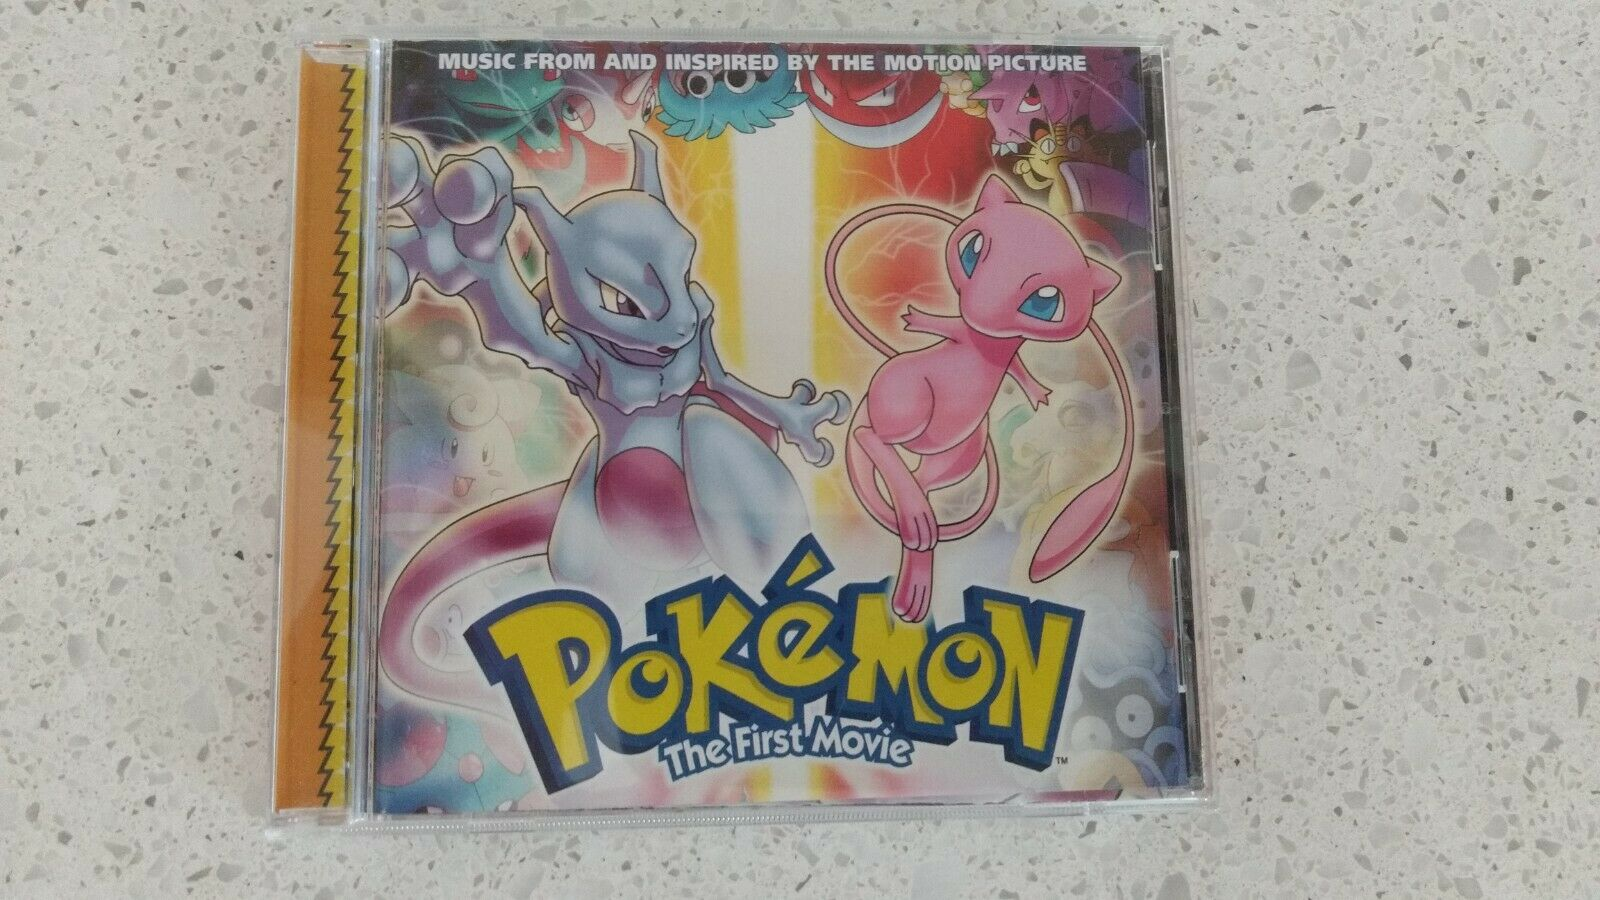 Pokemon The First Movie Original Motion Picture Soundtrack CD 4kids  Nintendo for sale online